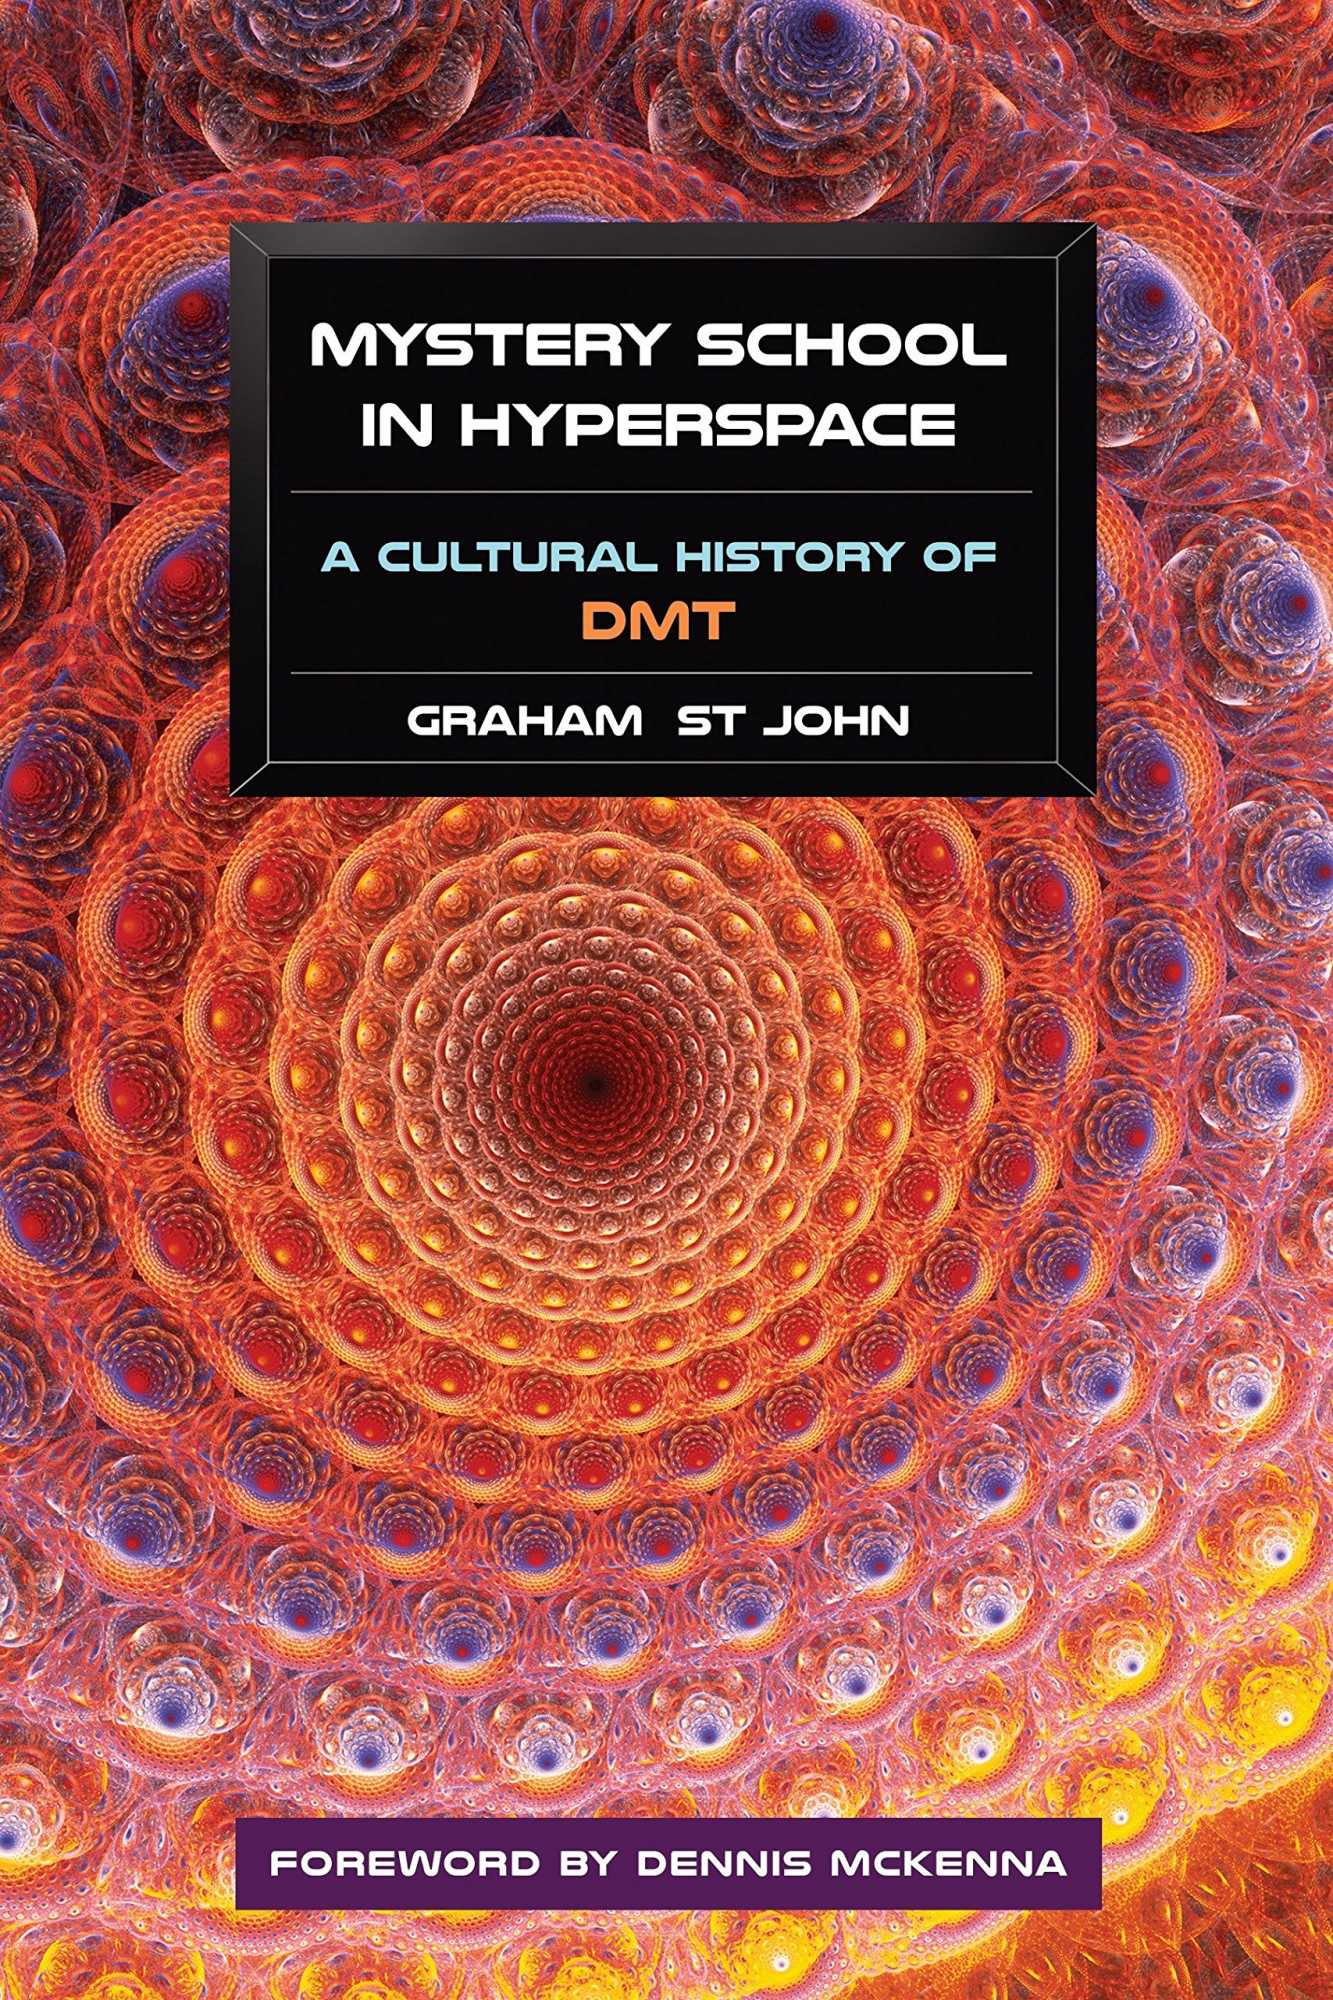 Mystery School In Hyperspace: A Cultural History of DMT, Graham St John